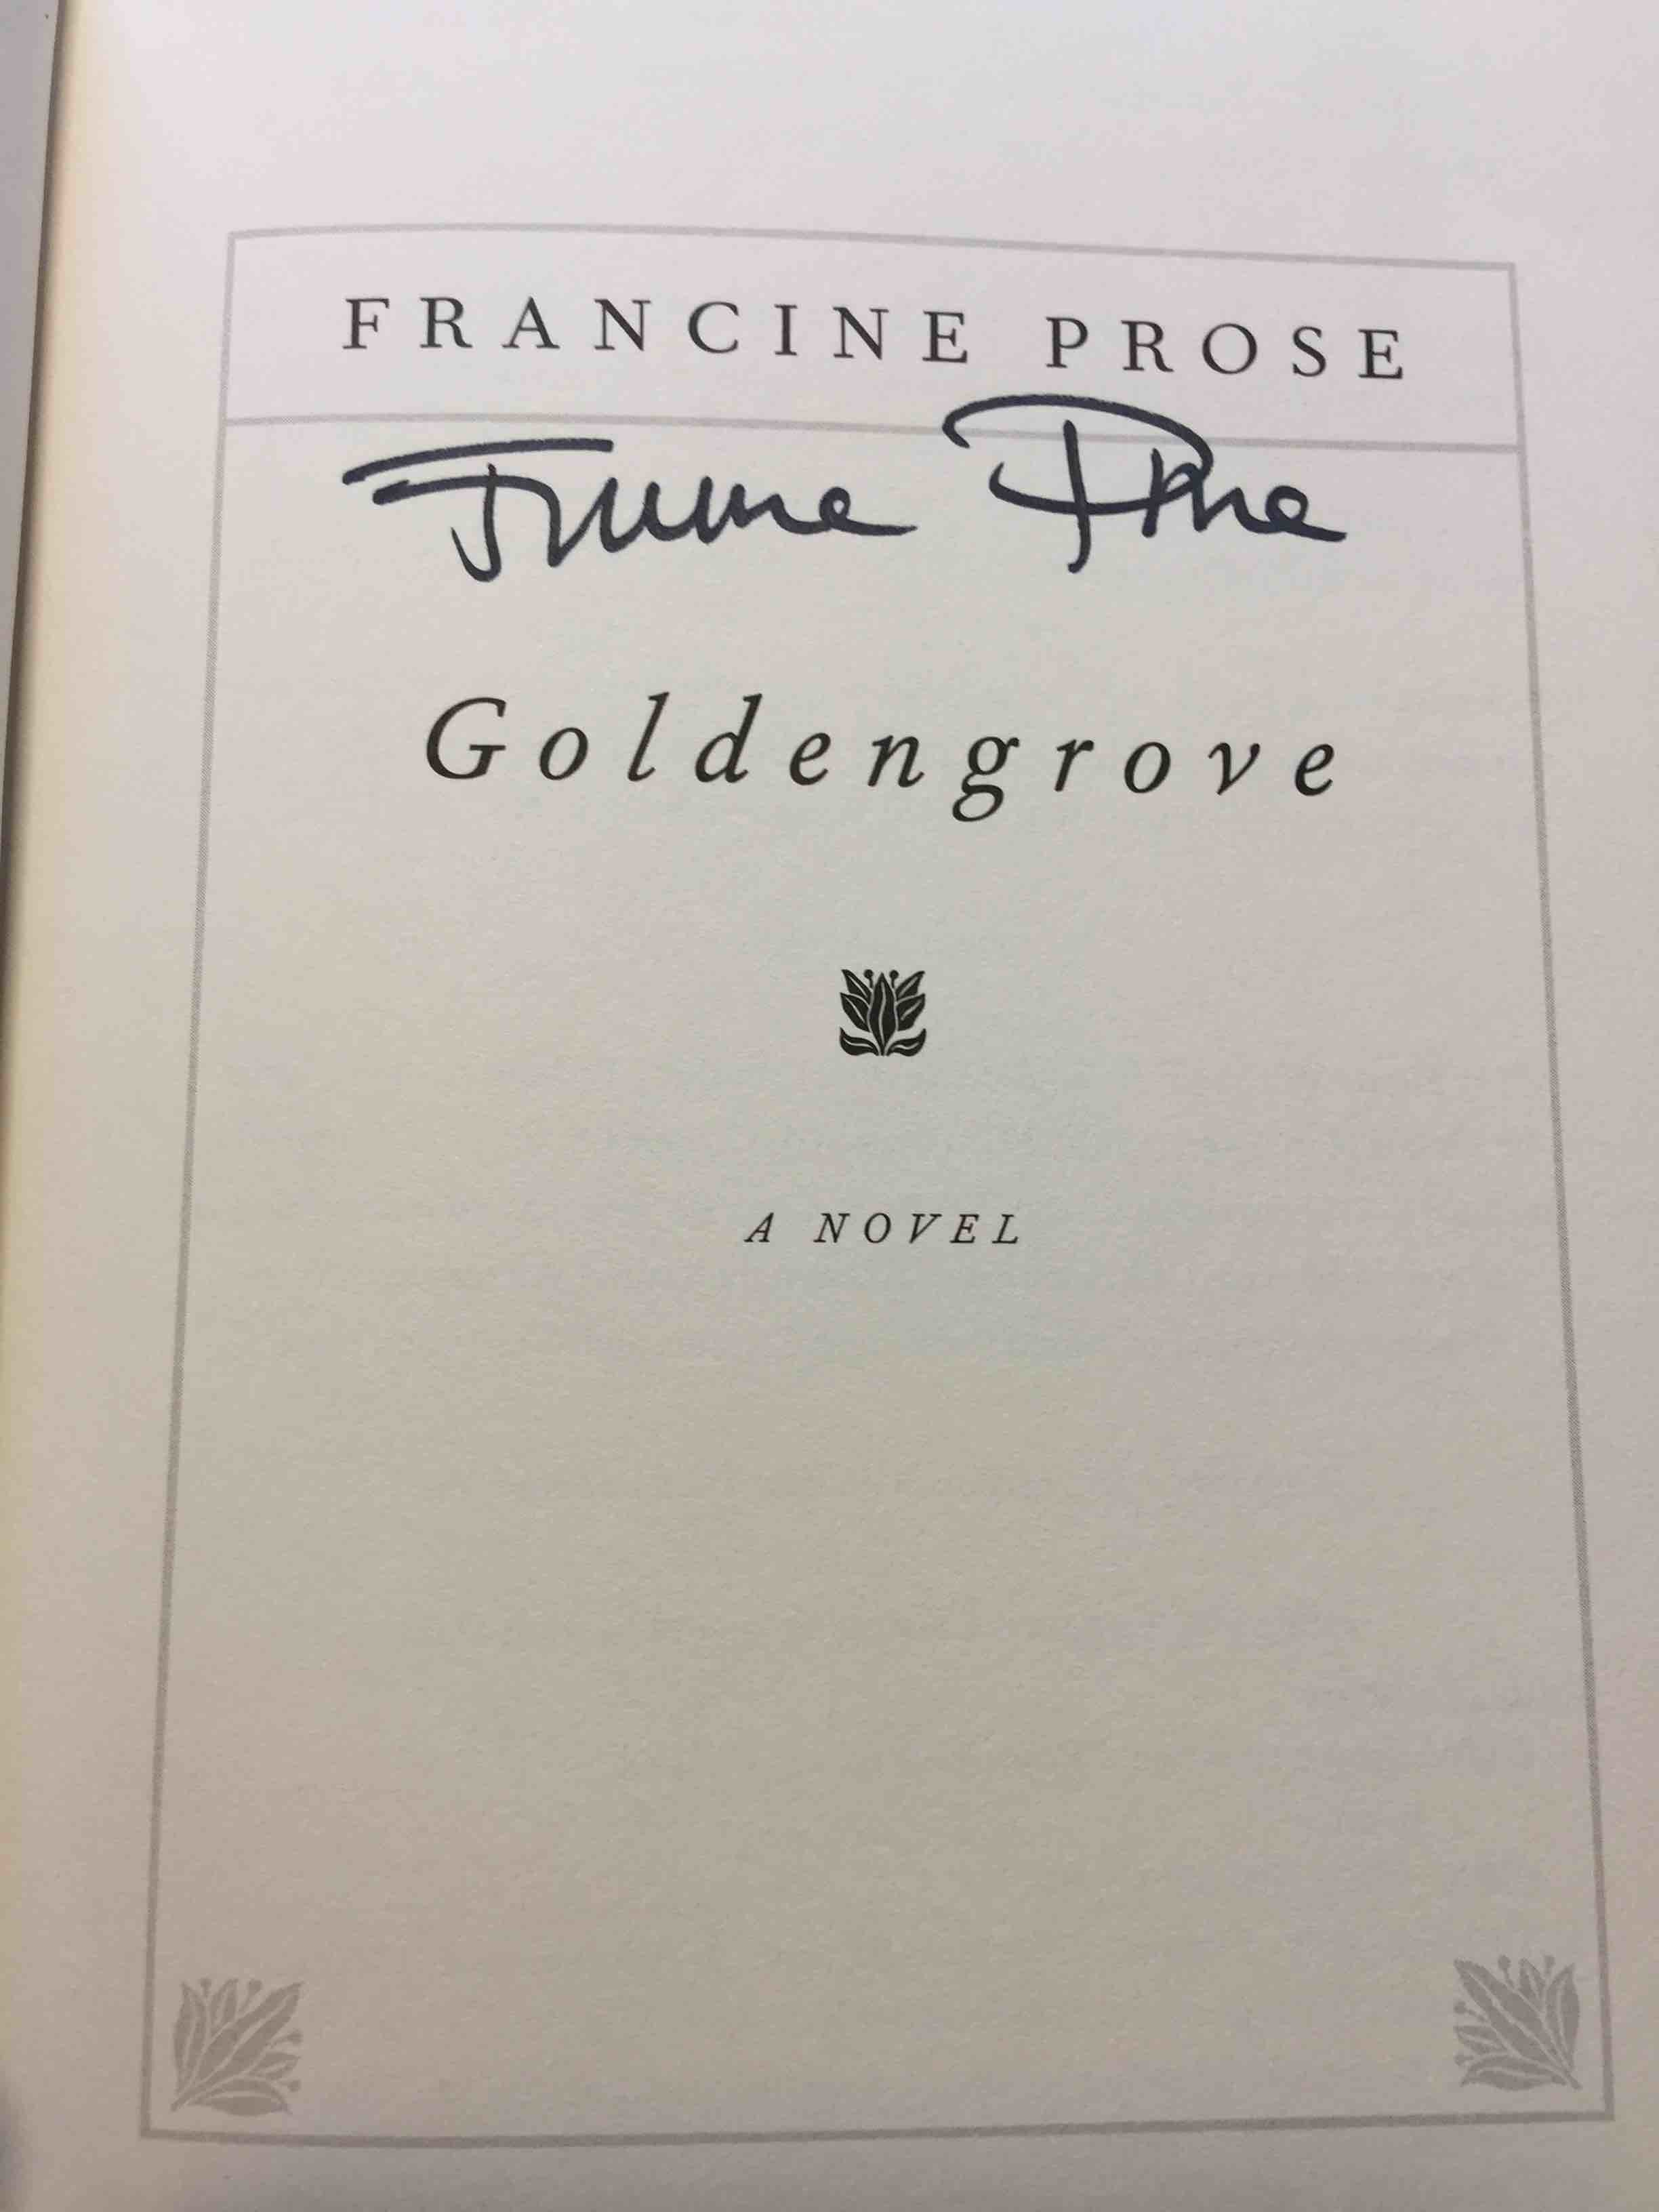 Book cover picture of Prose, Francine. GOLDENGROVE. New York: Harper Collins, (2008.)